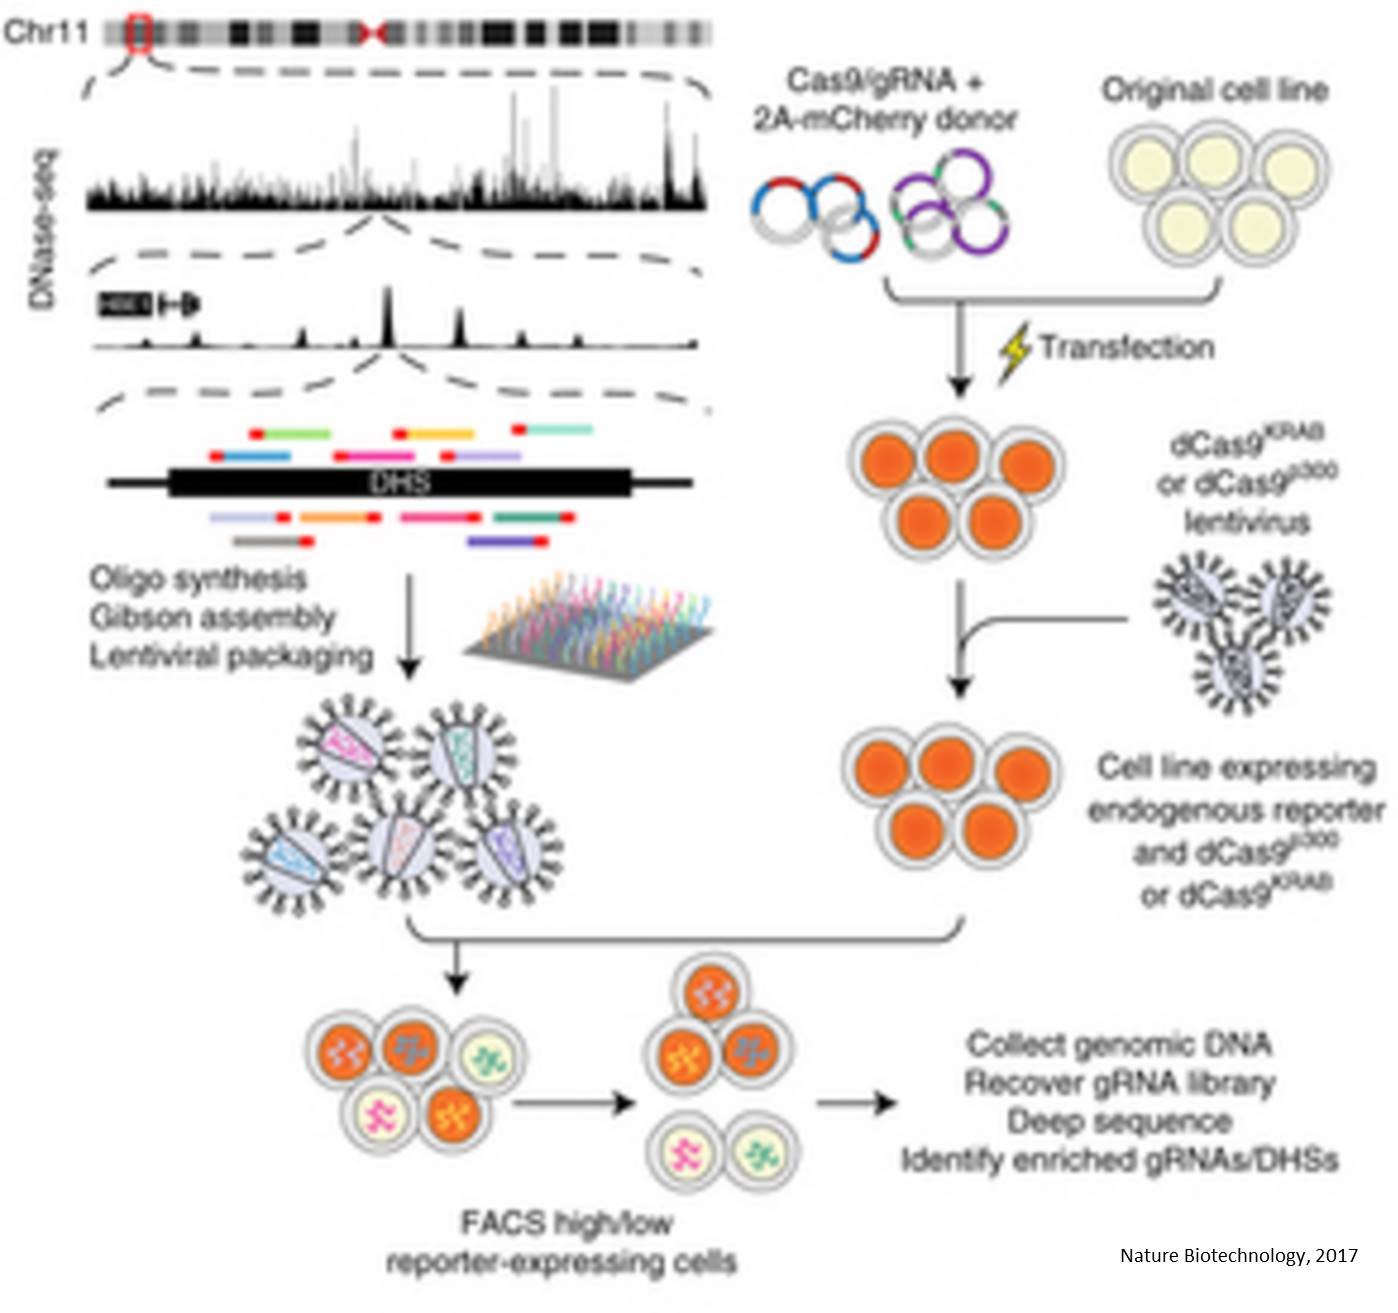 Screening non-coding genome to identify genetic diseases!